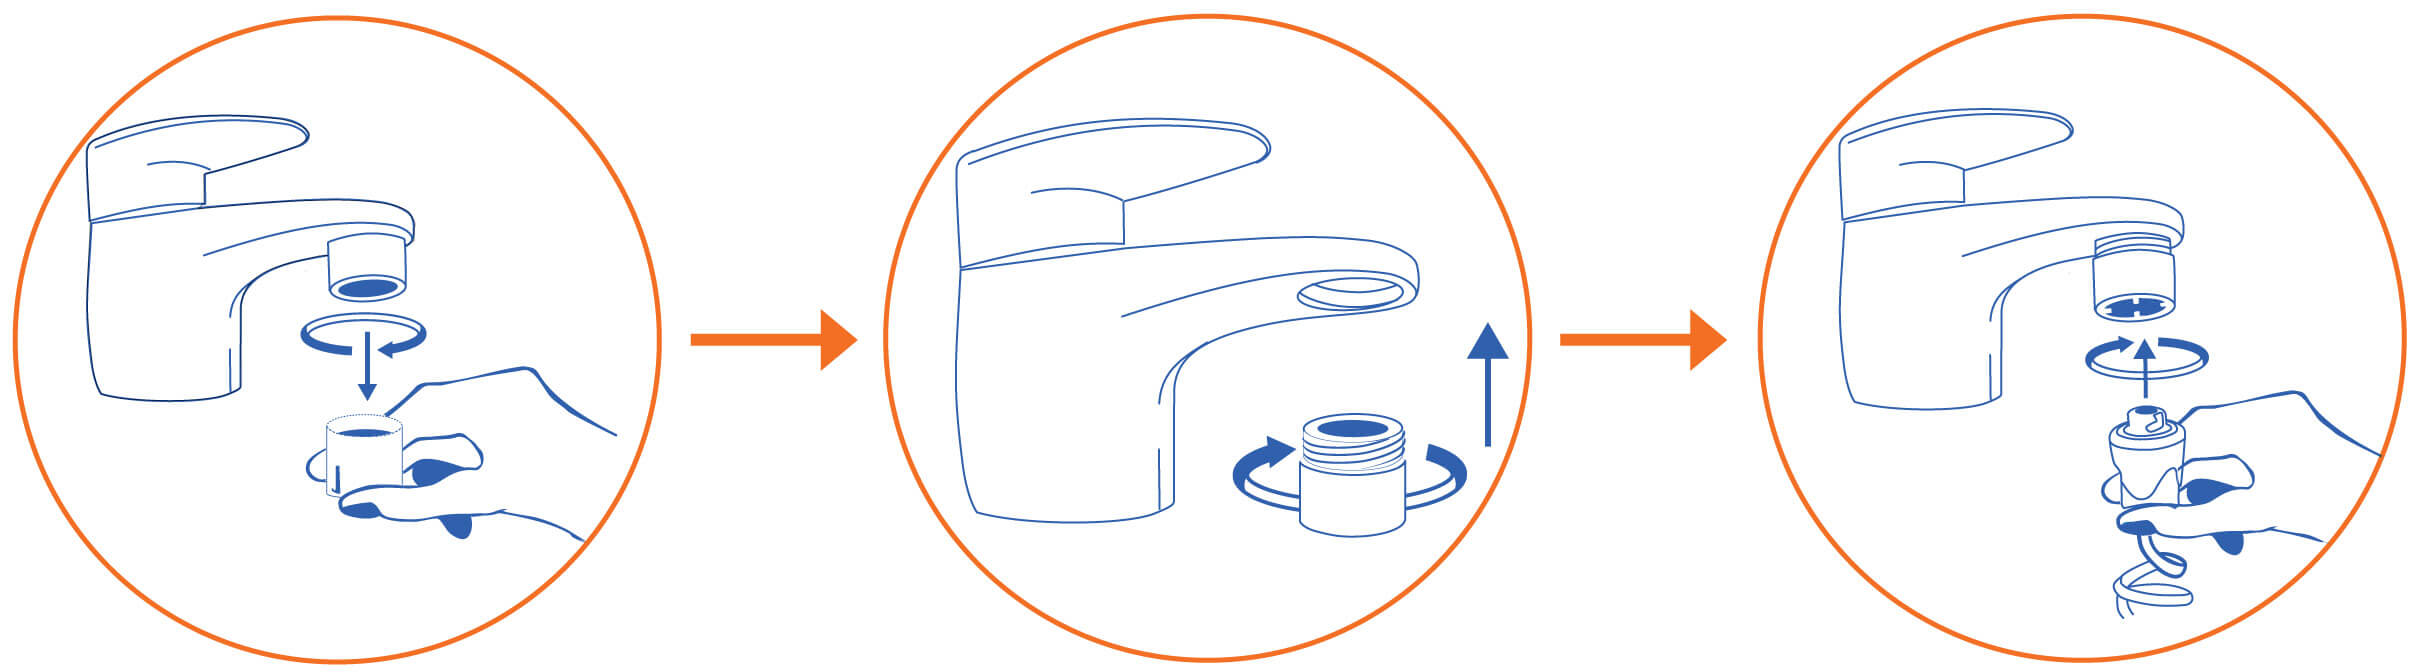 Connection with filter adapter for mounting to the tap